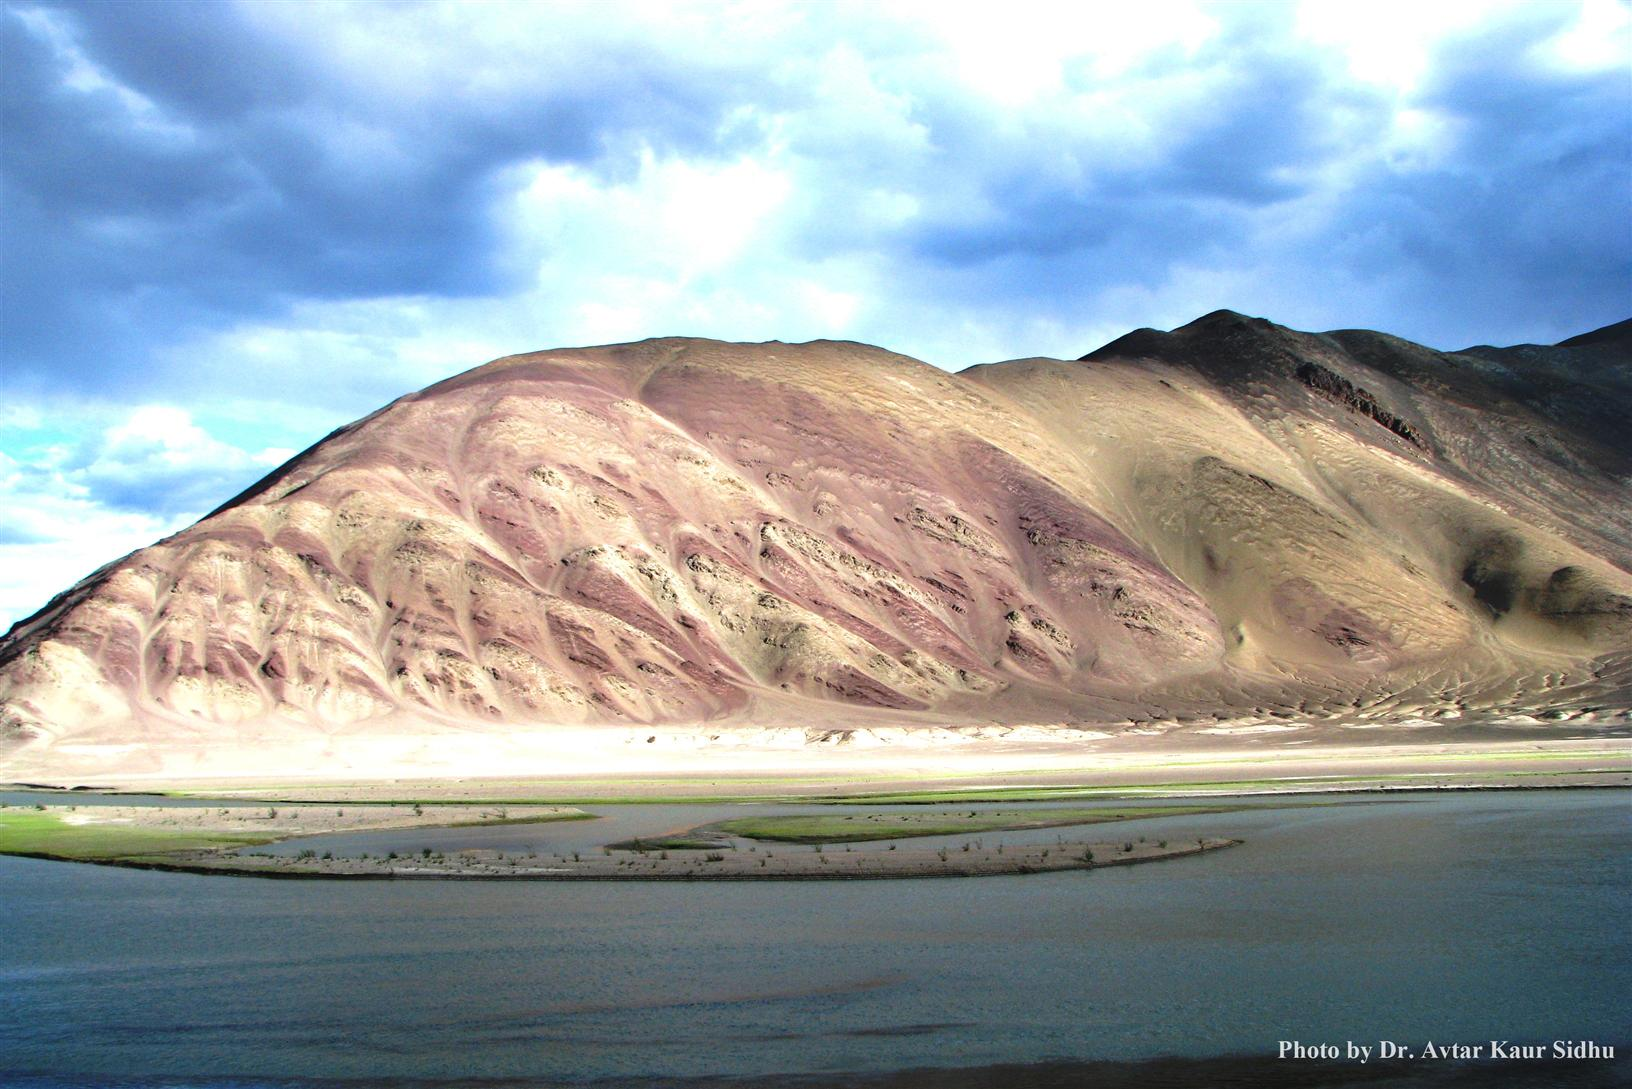 Barren Mountains along Indus River, Ladakh - ZSI